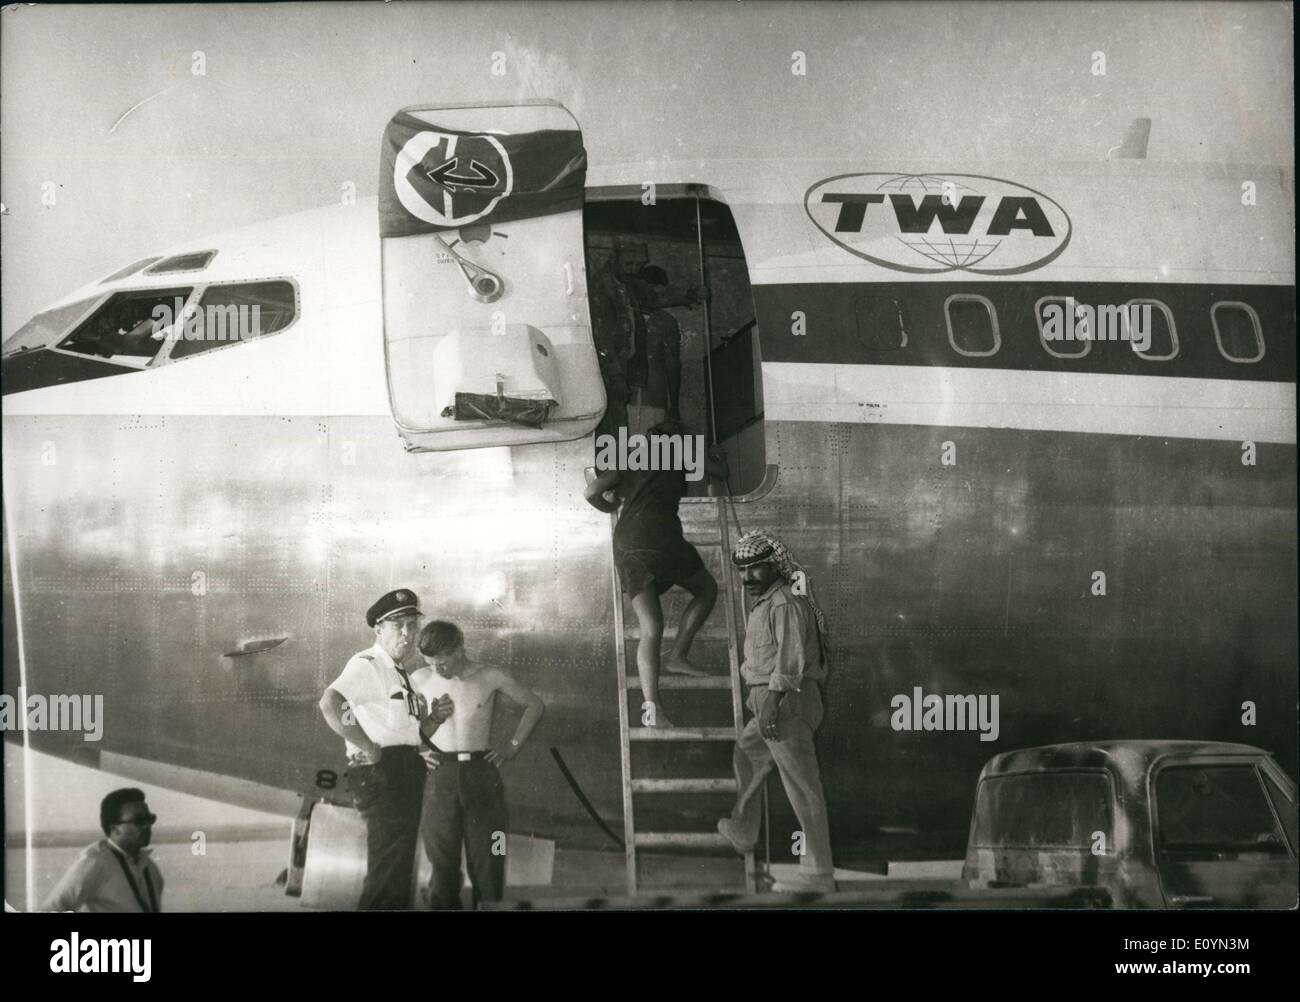 Nov. 11, 1970 - Some of the passengers boarding the hijacked Twa plane which landed in the Jordanian desert. The popular front flag is seen in front of the plane.The passengers of the three planes were moved to Amman. - Stock Image